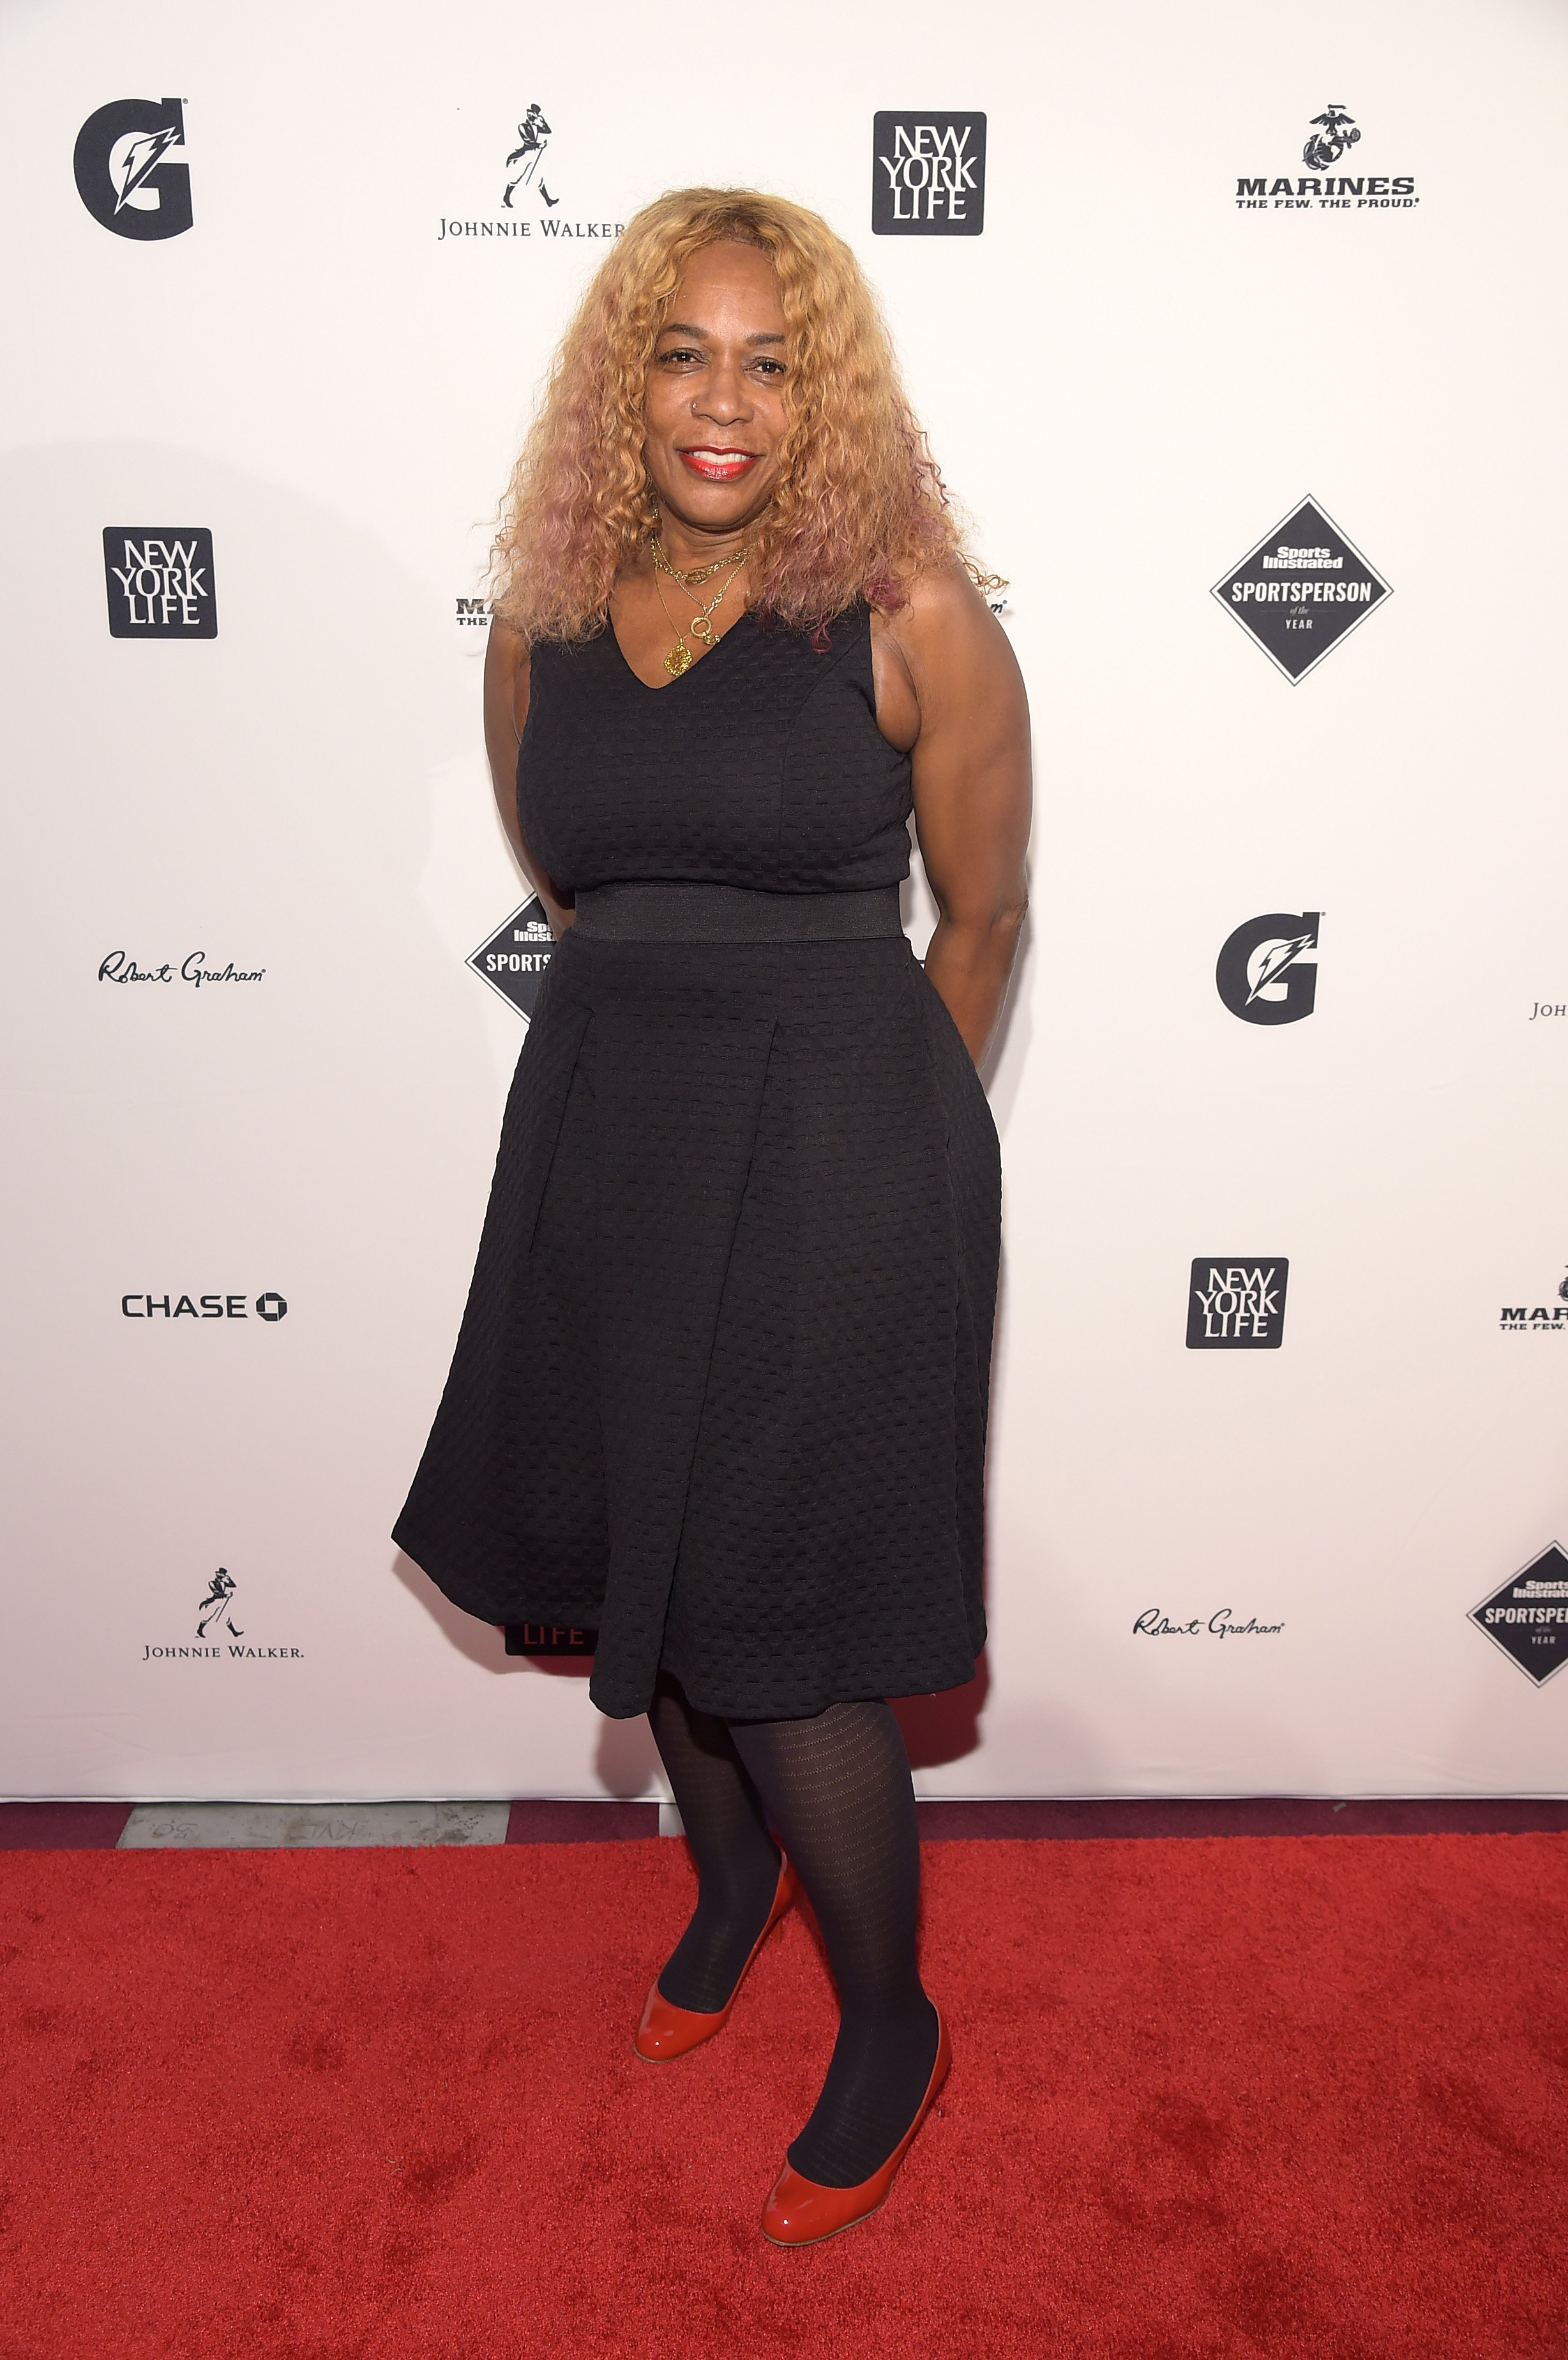 Oracene Price at the Sports Illustrated Sportsperson of the Year Ceremony in 2015   Photo: Getty Images